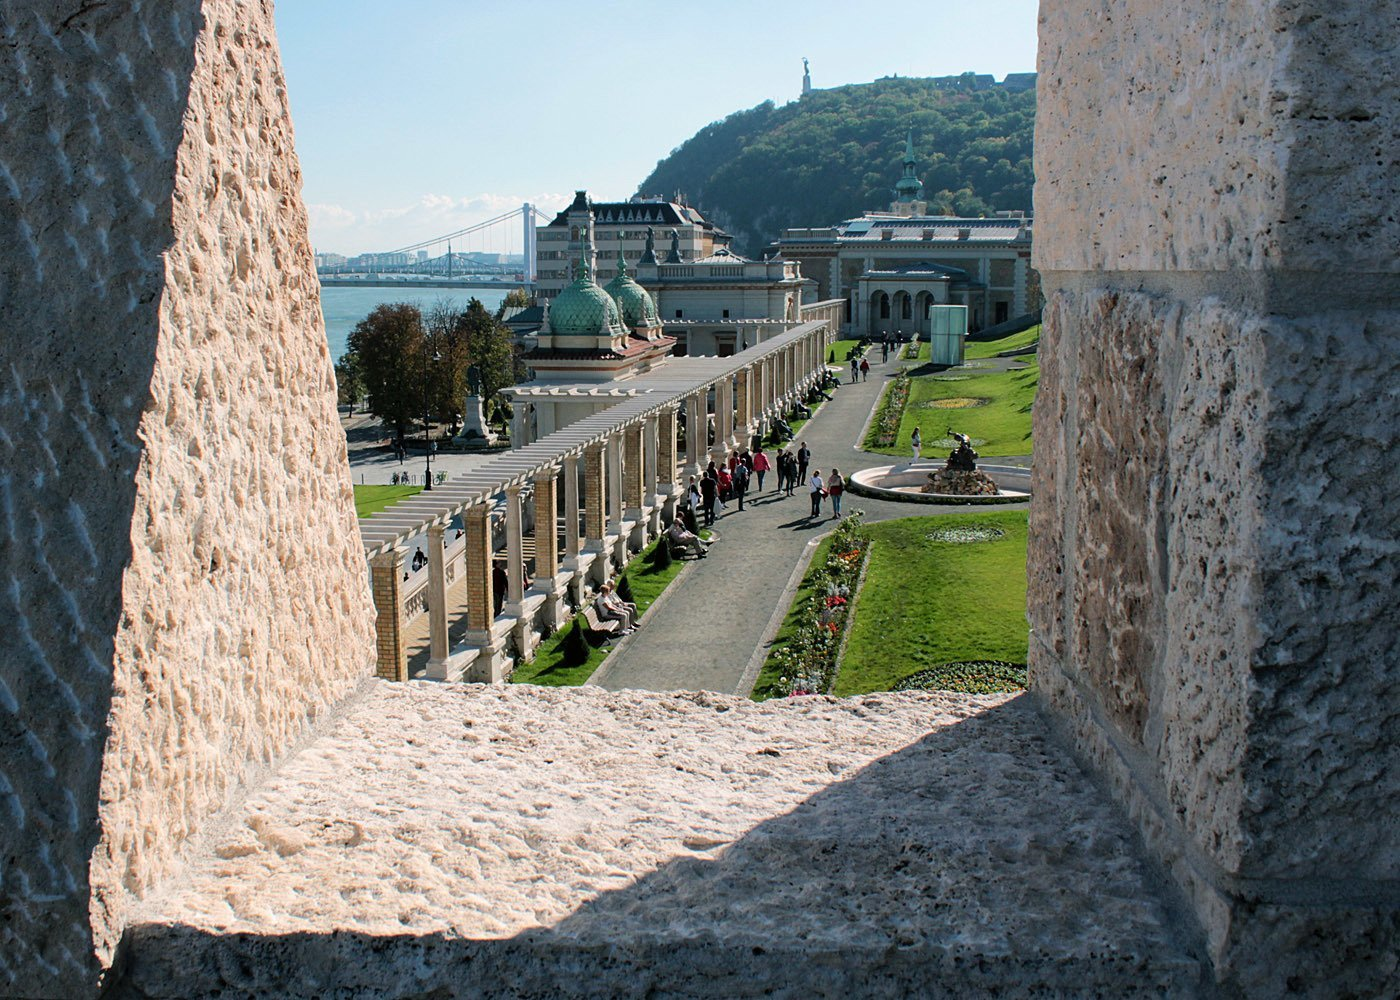 Horse fell to death from Buda Castle